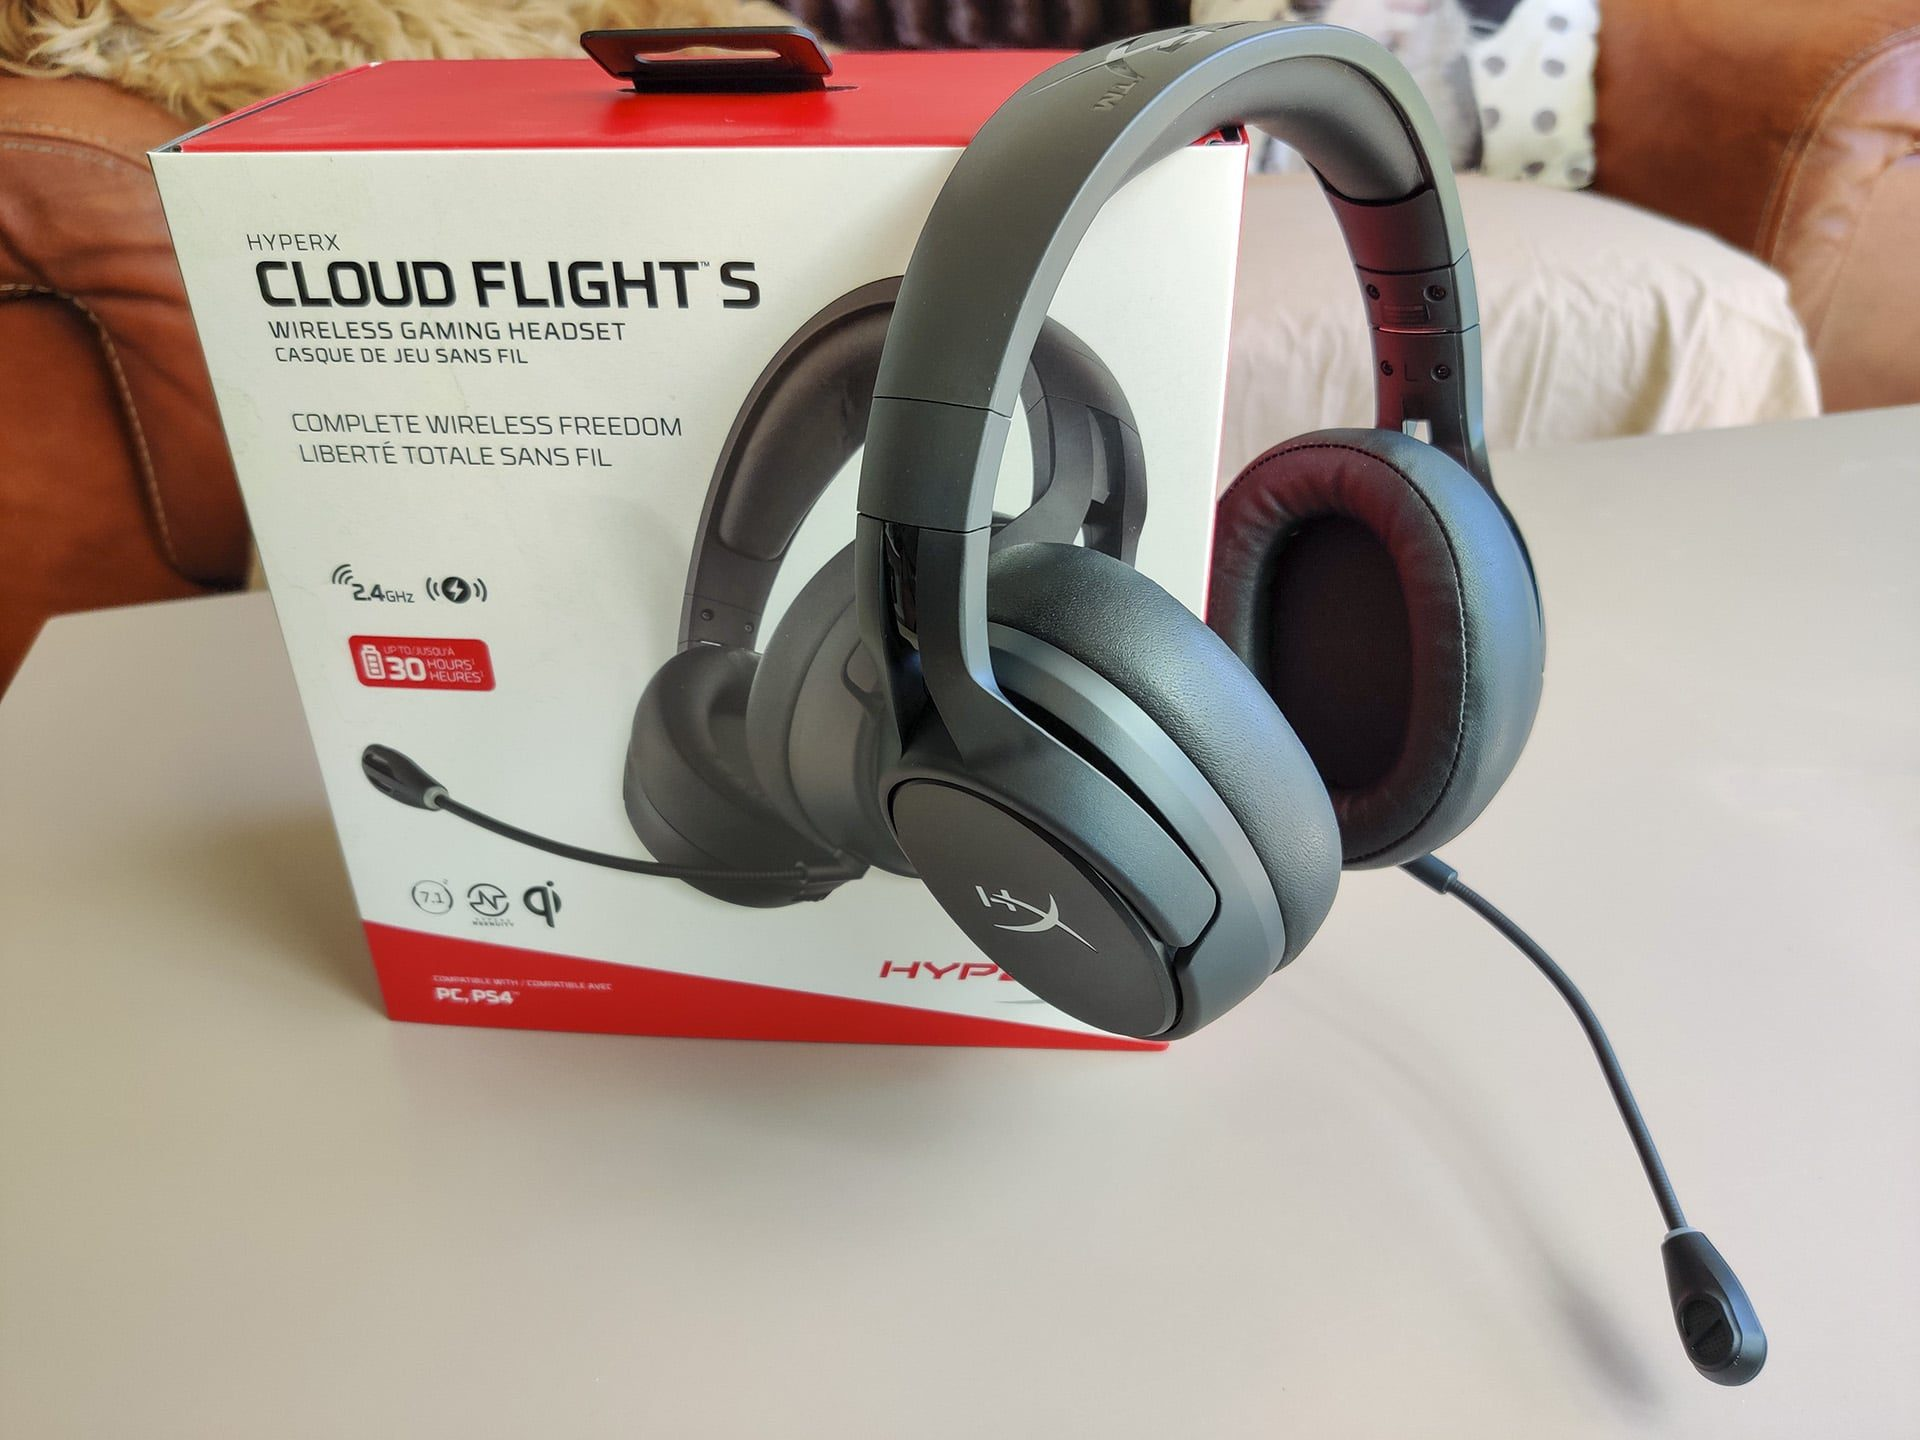 Image 1 : Test : HyperX Cloud Flight S, que vaut ce casque sans fil à recharge par induction ?